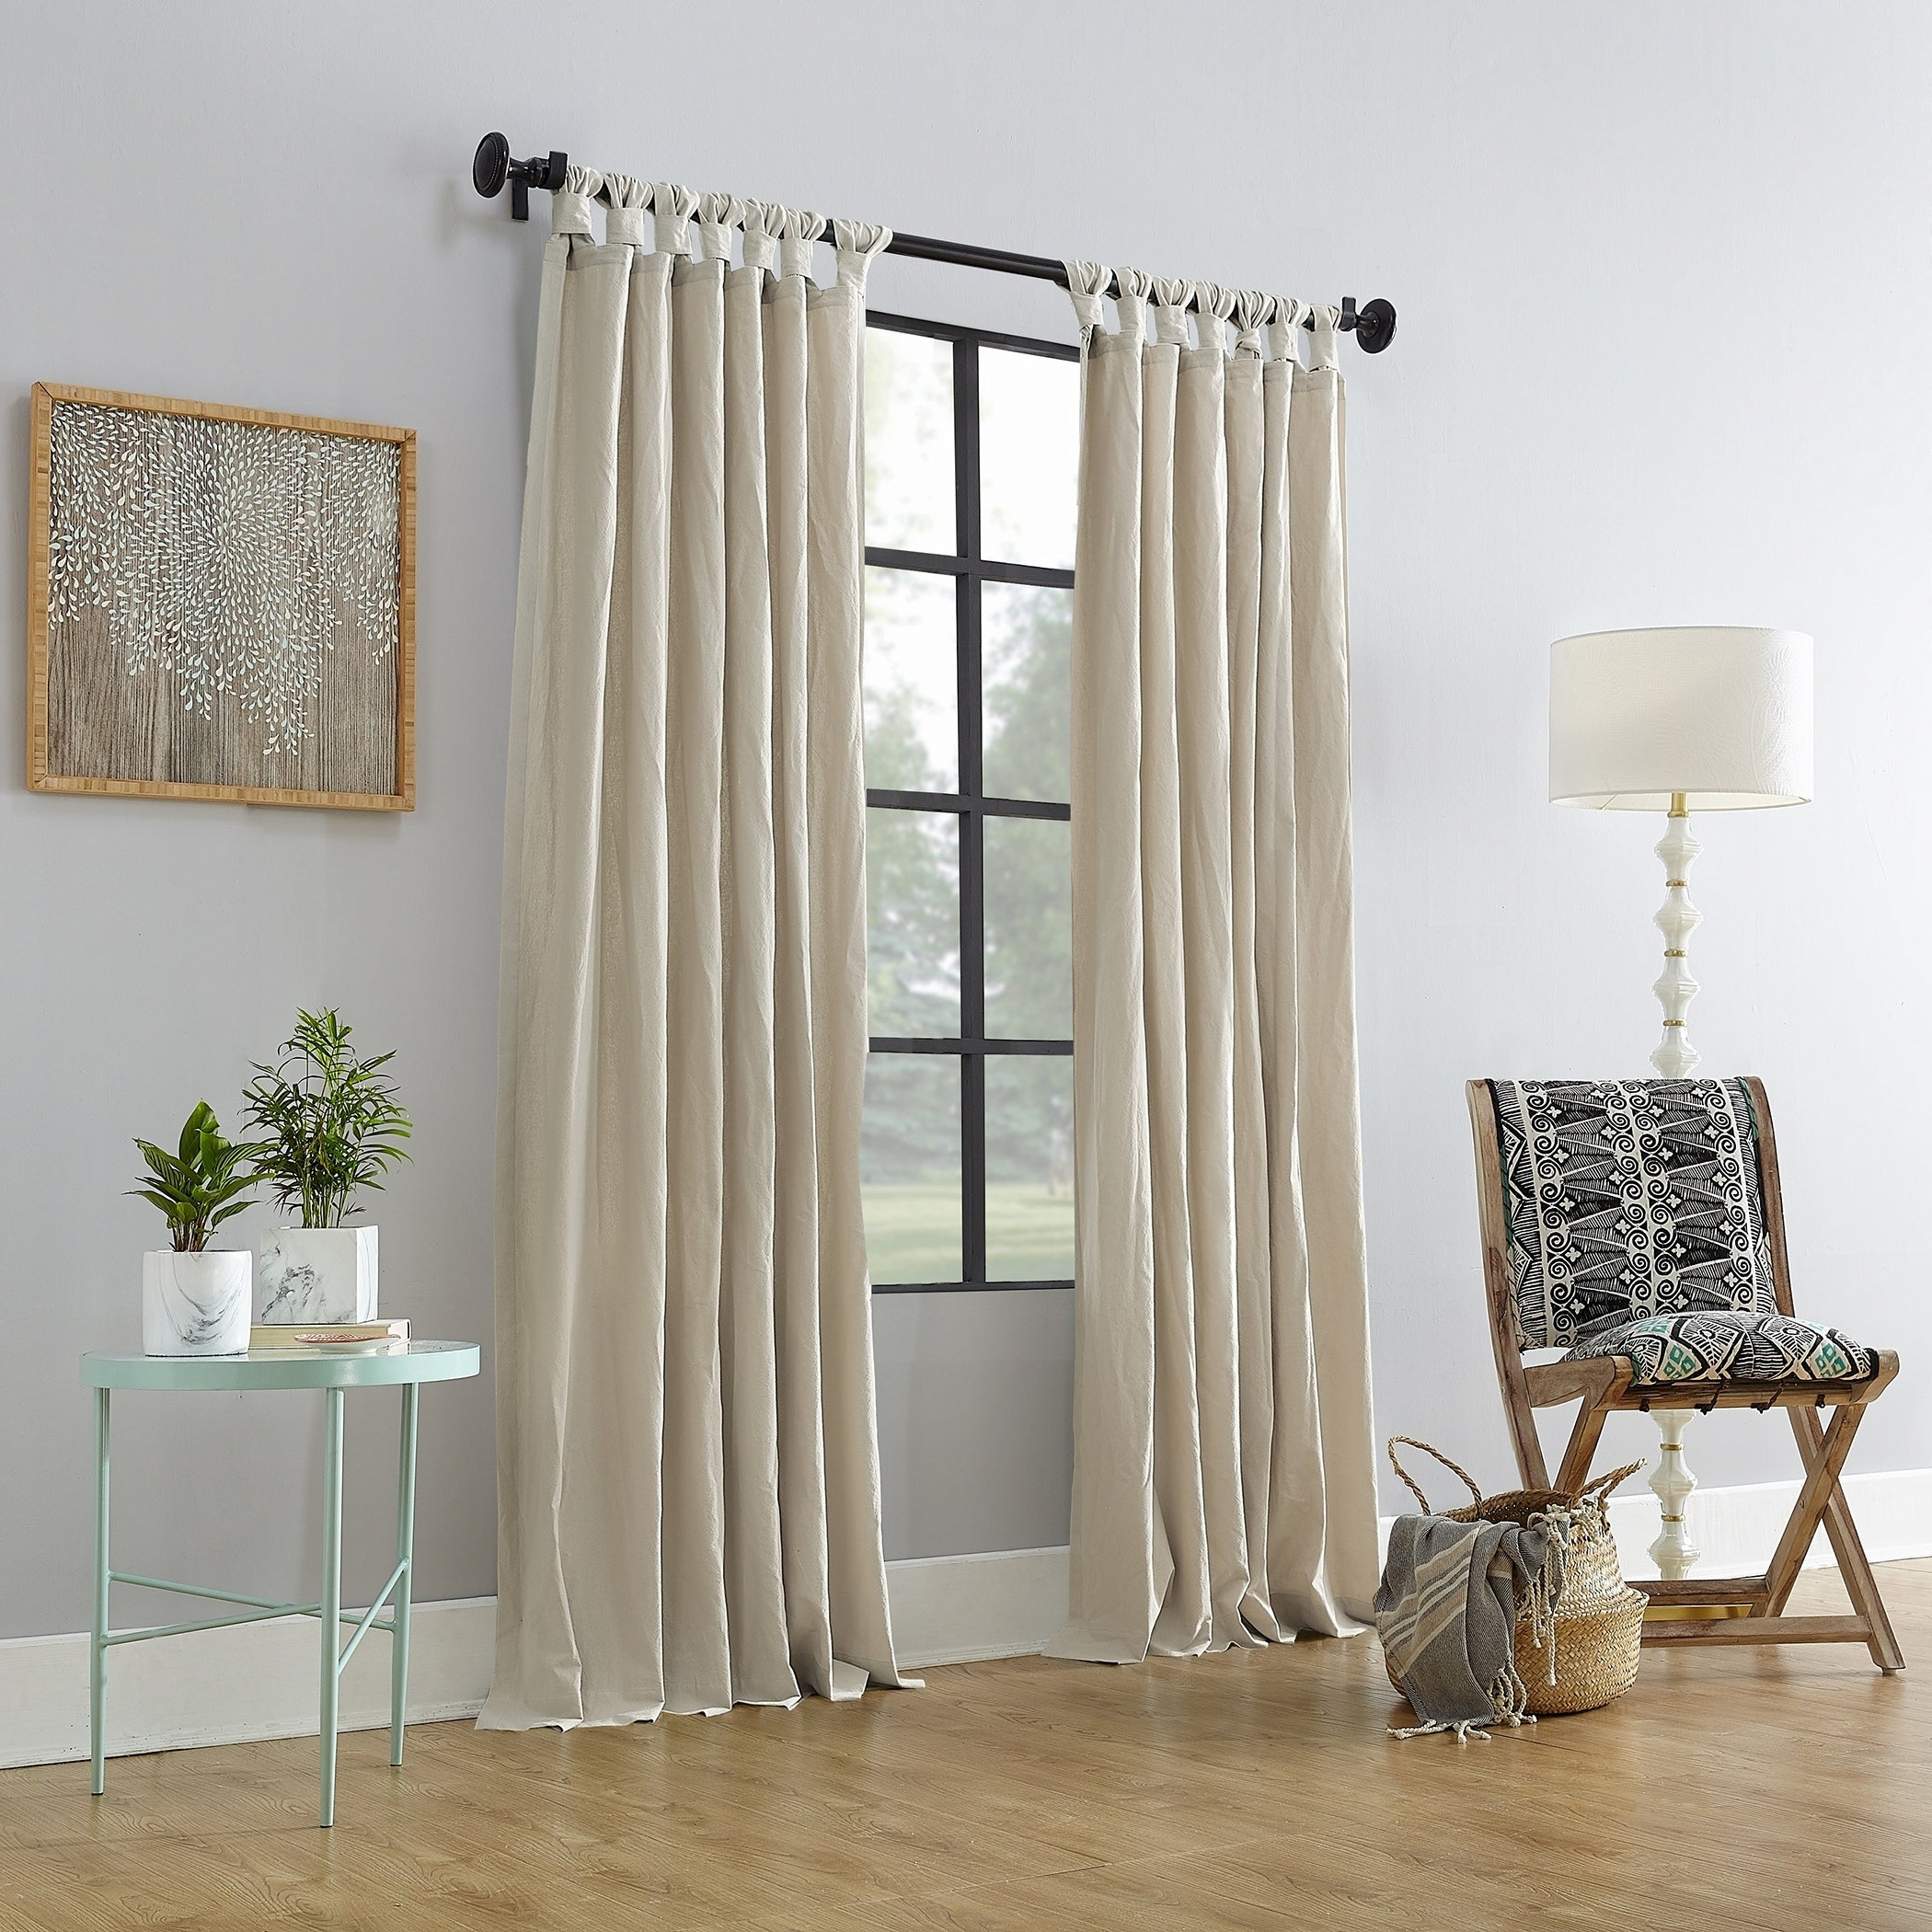 Archaeo Washed Cotton Twist Tab Single Curtain Panels With Well Known Archaeo Washed Cotton Twist Tab Single Curtain Panel (View 6 of 20)